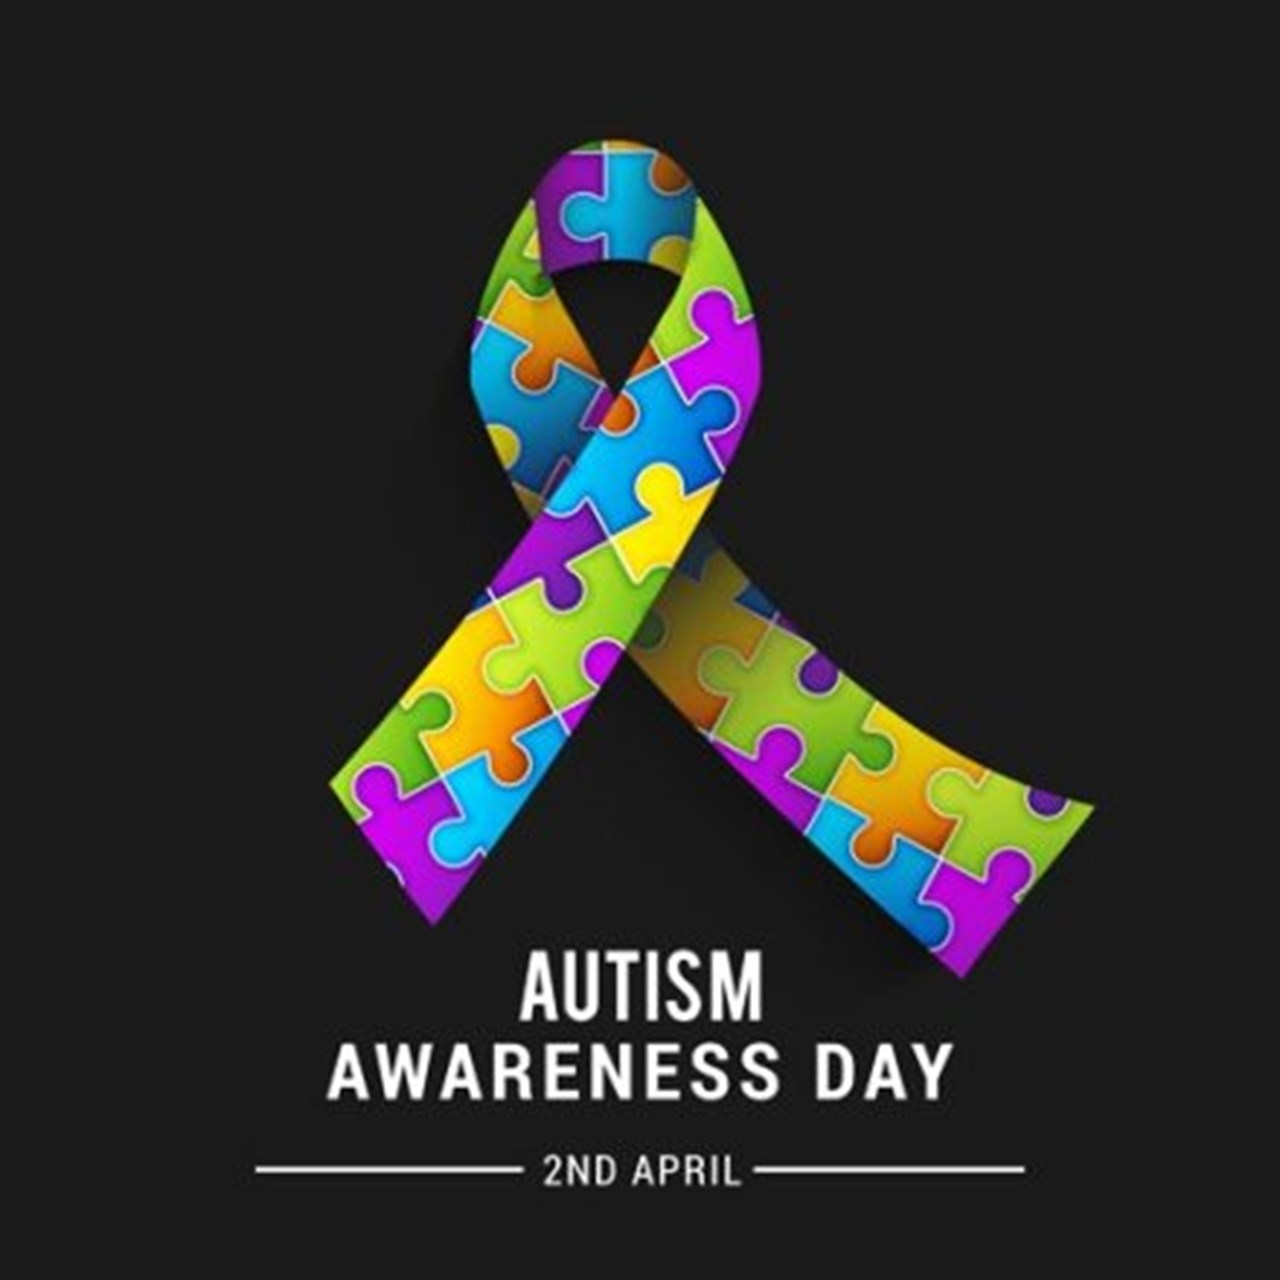 World Autism Awareness Day 2018: Everything you need to know